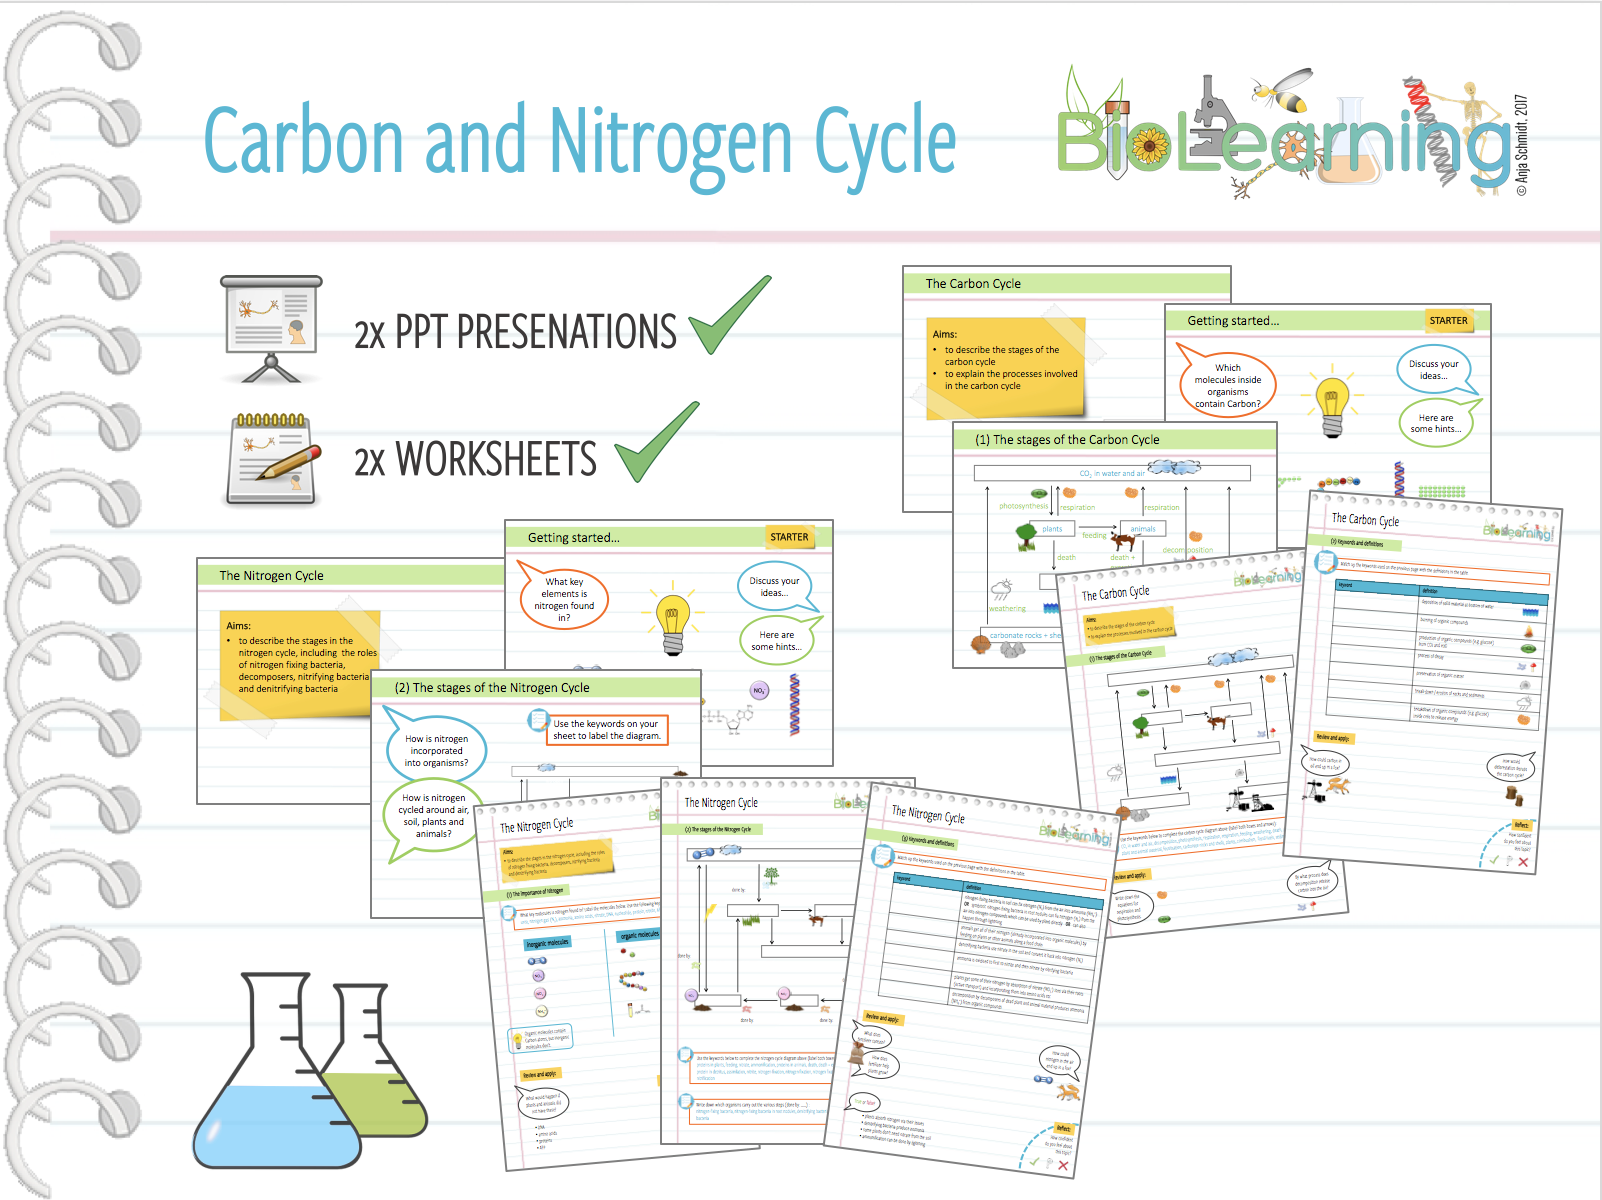 4x carbon and nitrogen cycle 2x powerpoint ppts and 2x worksheets 4x carbon and nitrogen cycle 2x powerpoint ppts and 2x worksheets ks3ks4 by anjacschmidt teaching resources tes ccuart Gallery